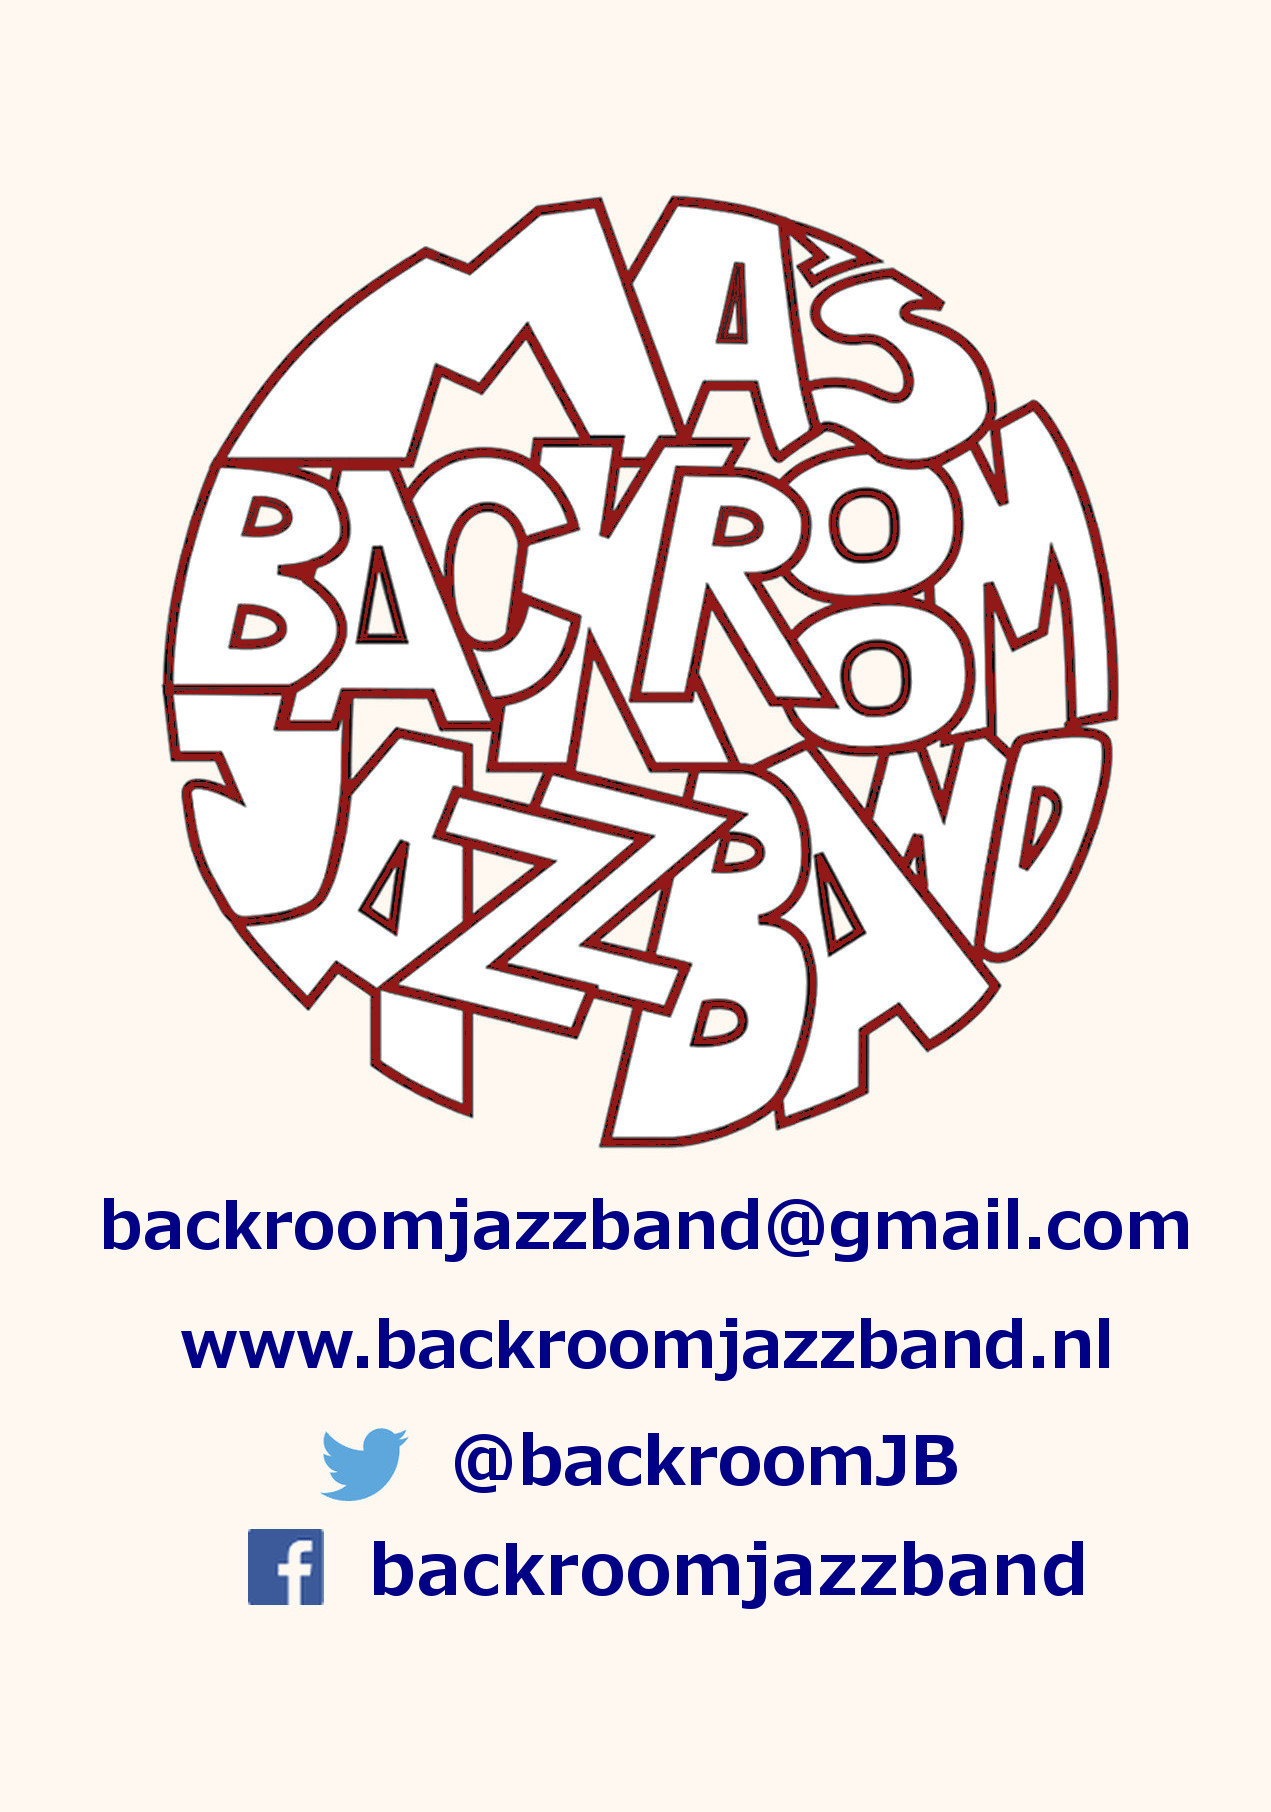 Once in a while, full version (nearly) - Ma's Backroom Jazzband